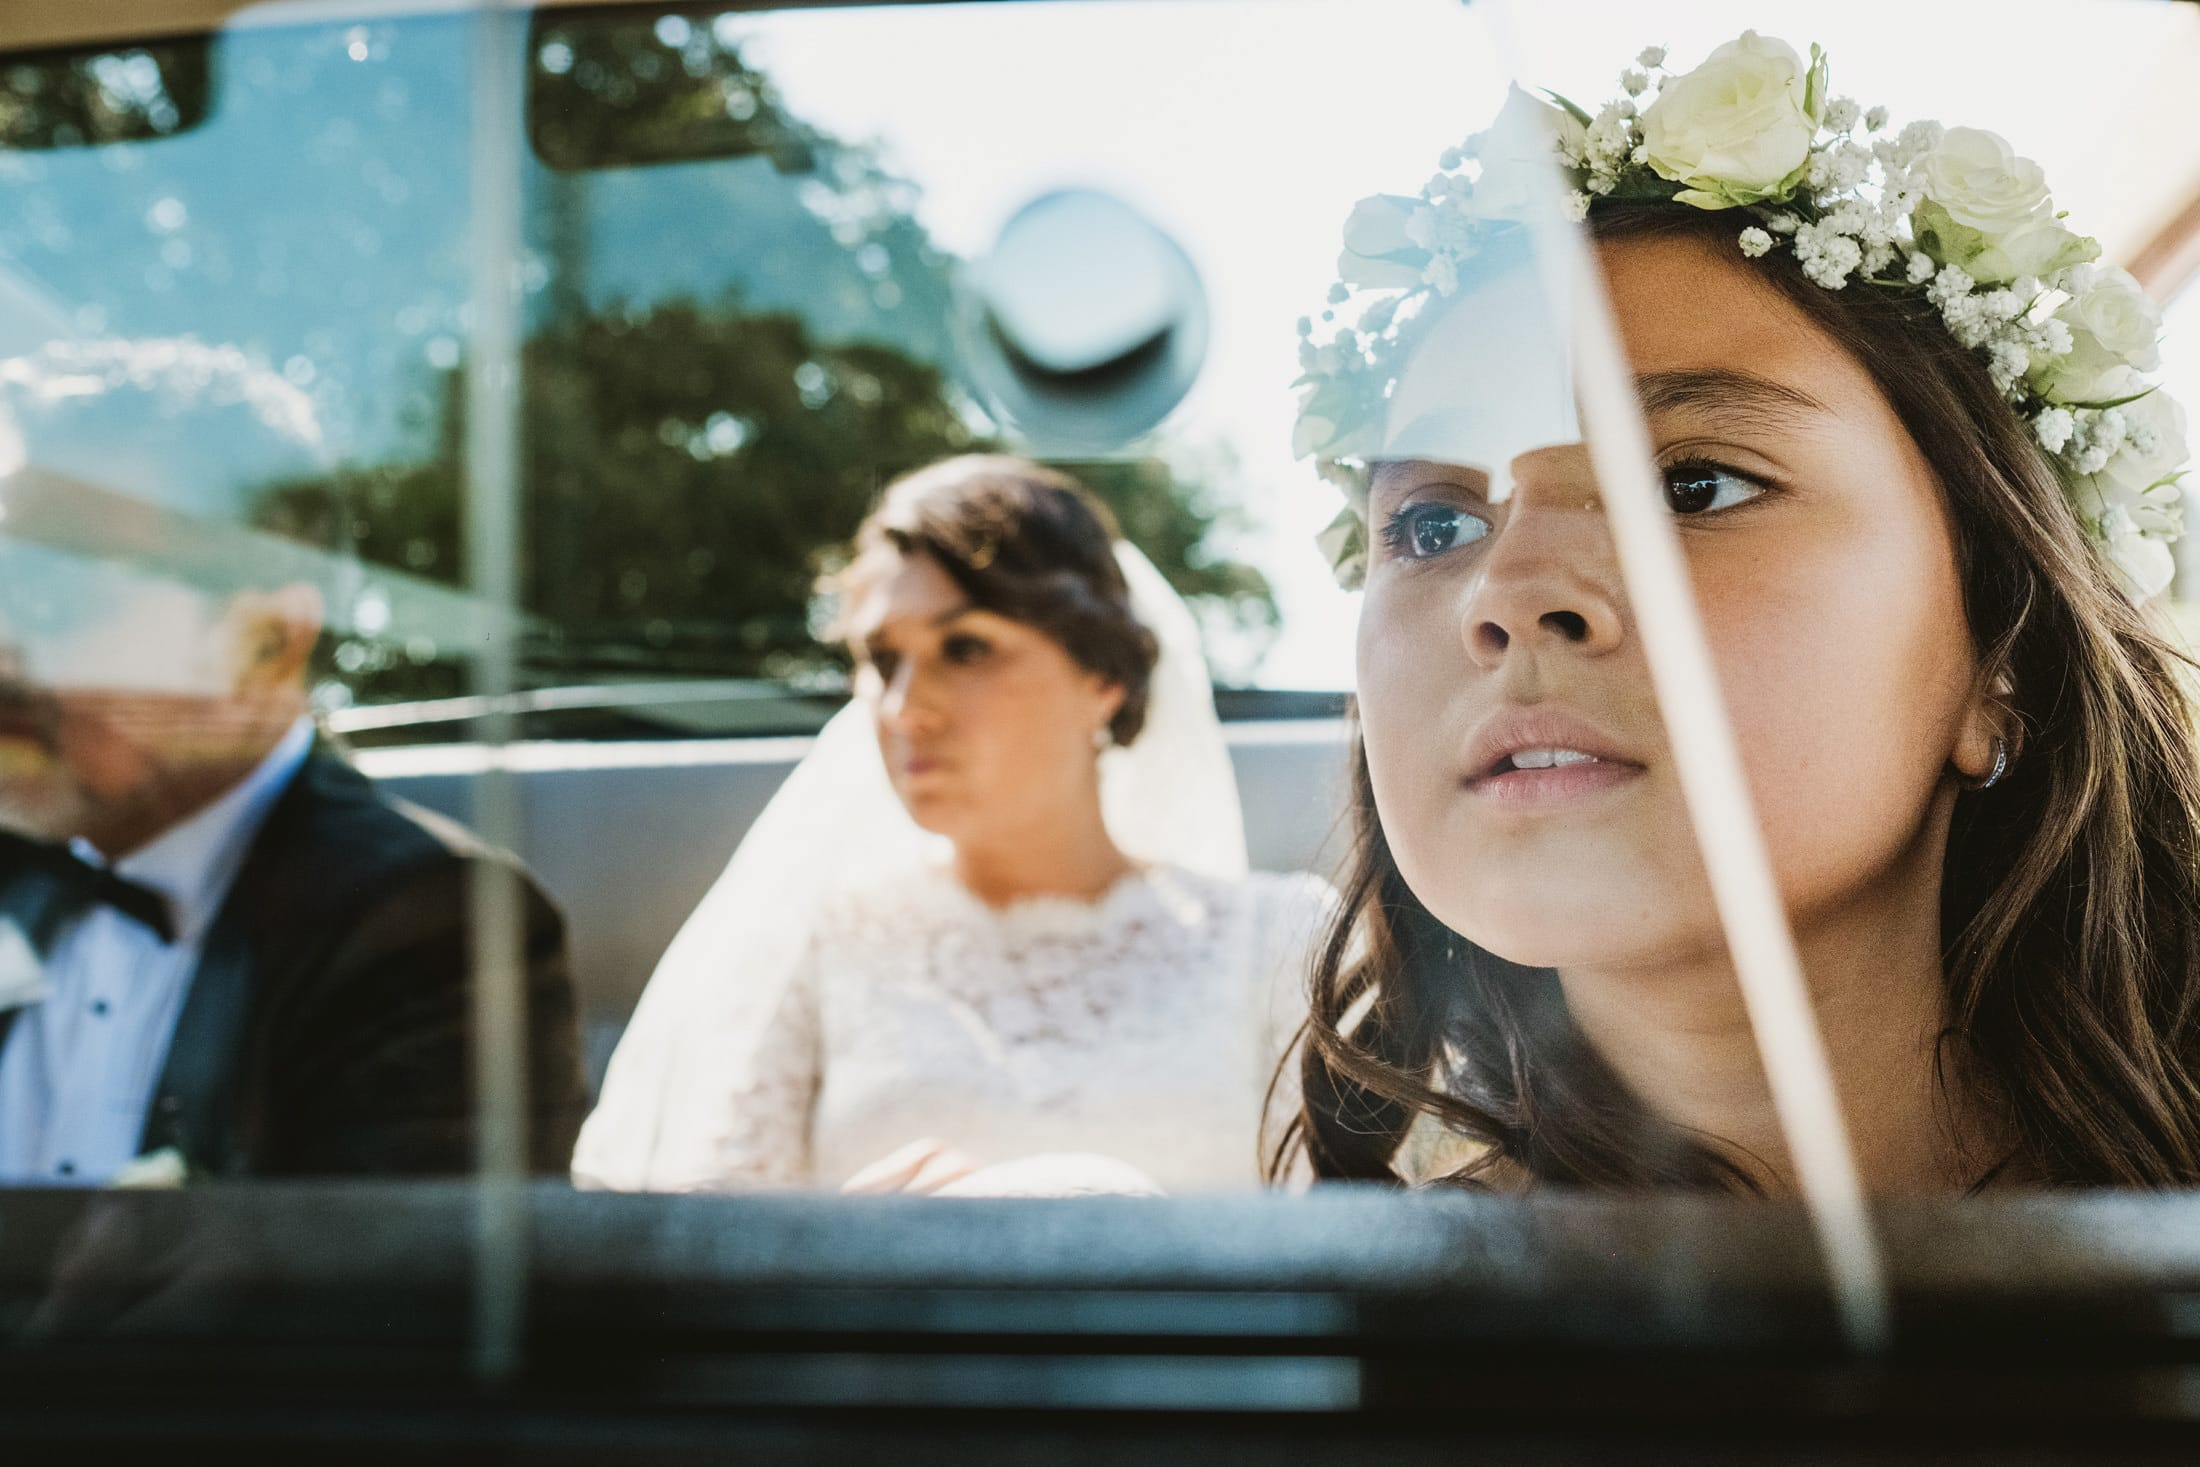 bride, dad and bridesmaid in car. Bridesmaid in the foreground.